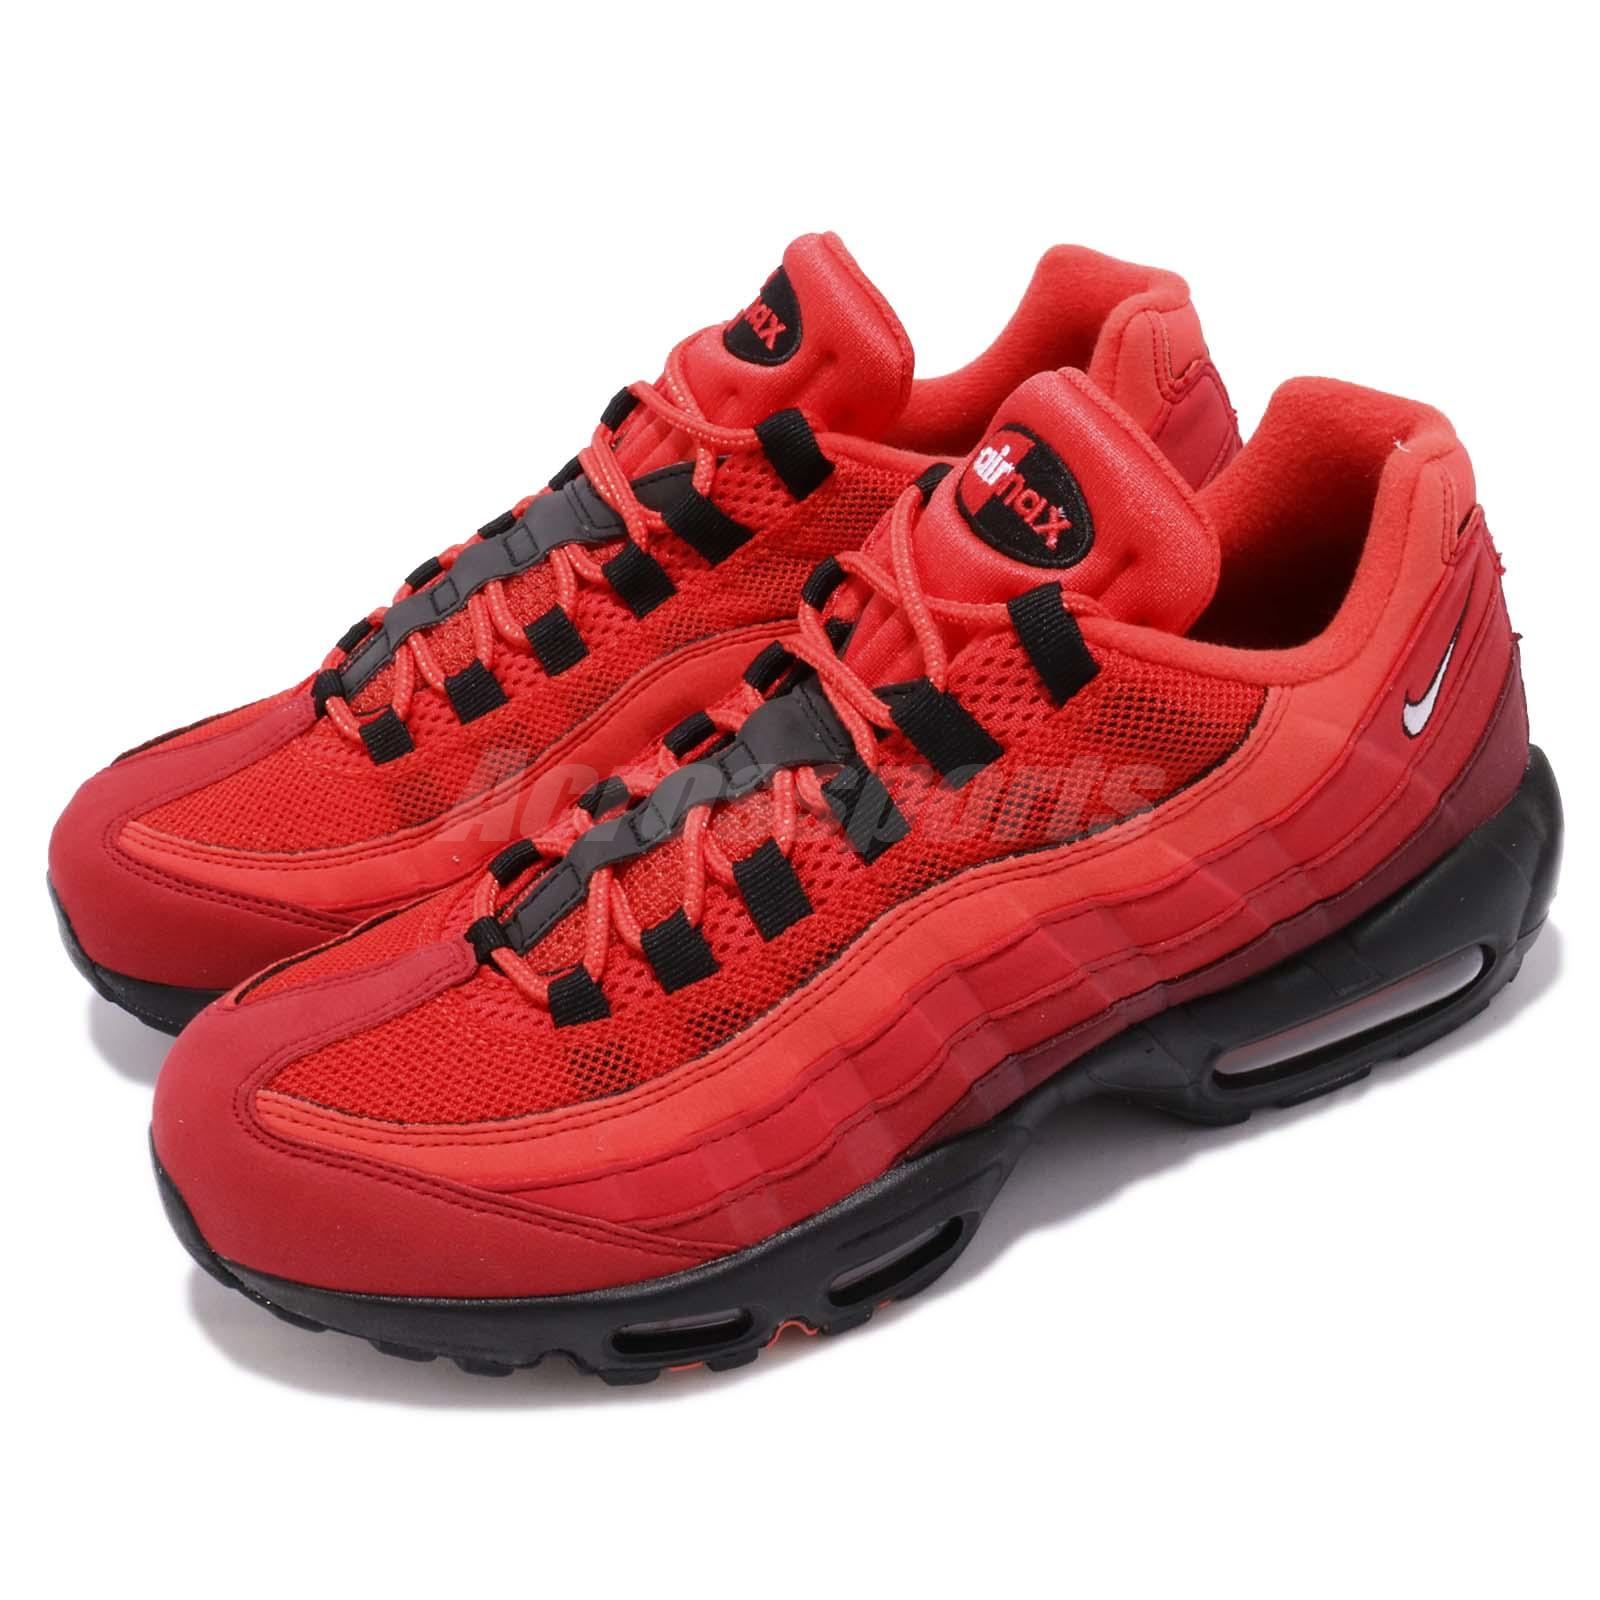 competitive price 9cf0f bcd58 Details about Nike Air Max 95 OG Habanero Red Men Running Lifestyle Shoes  Sneakers AT2865-600